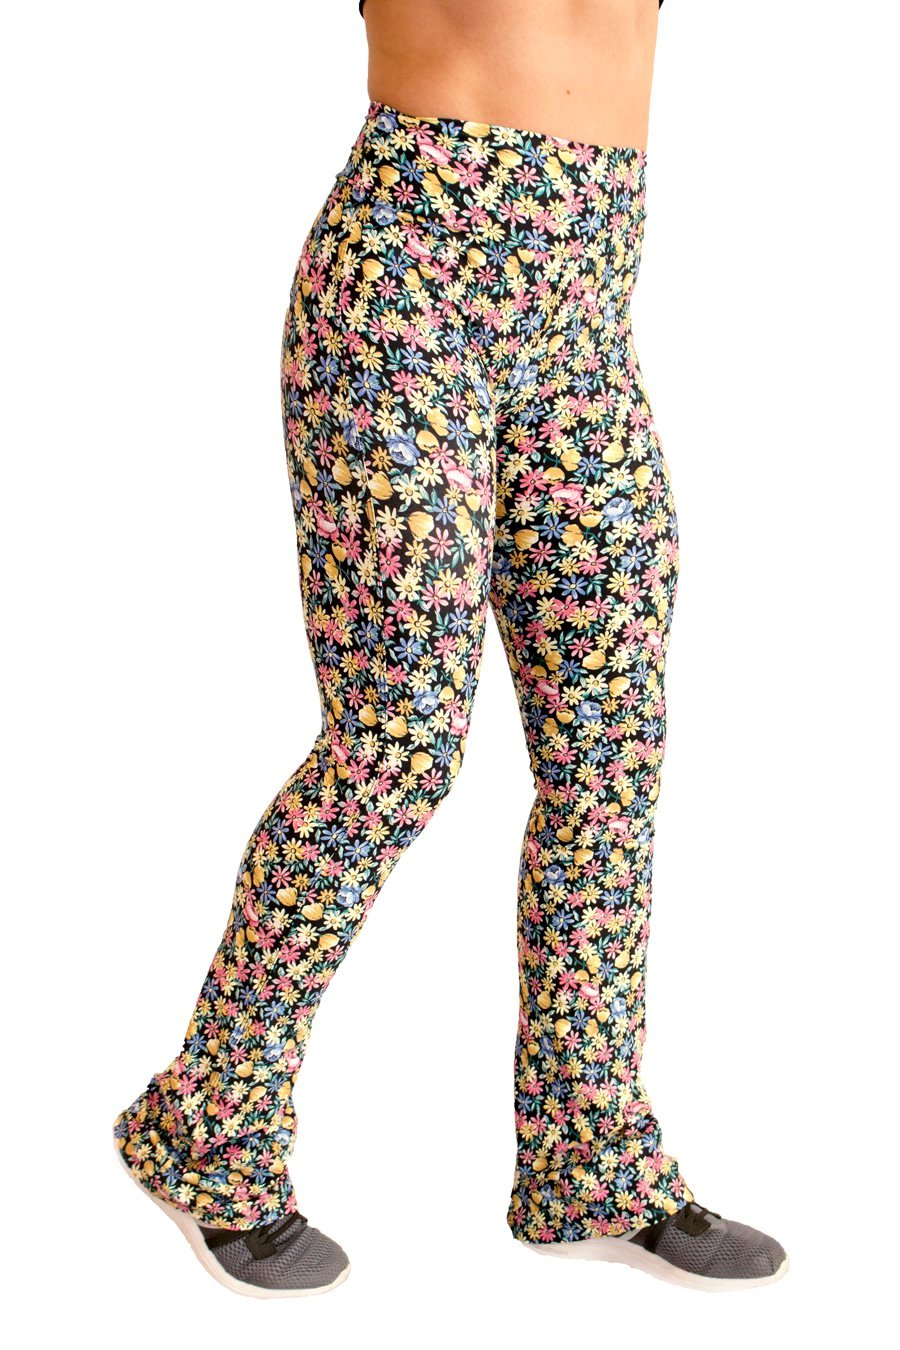 Bailarina Flores Flare CO2 Pants - women yoga clothes beBrazil